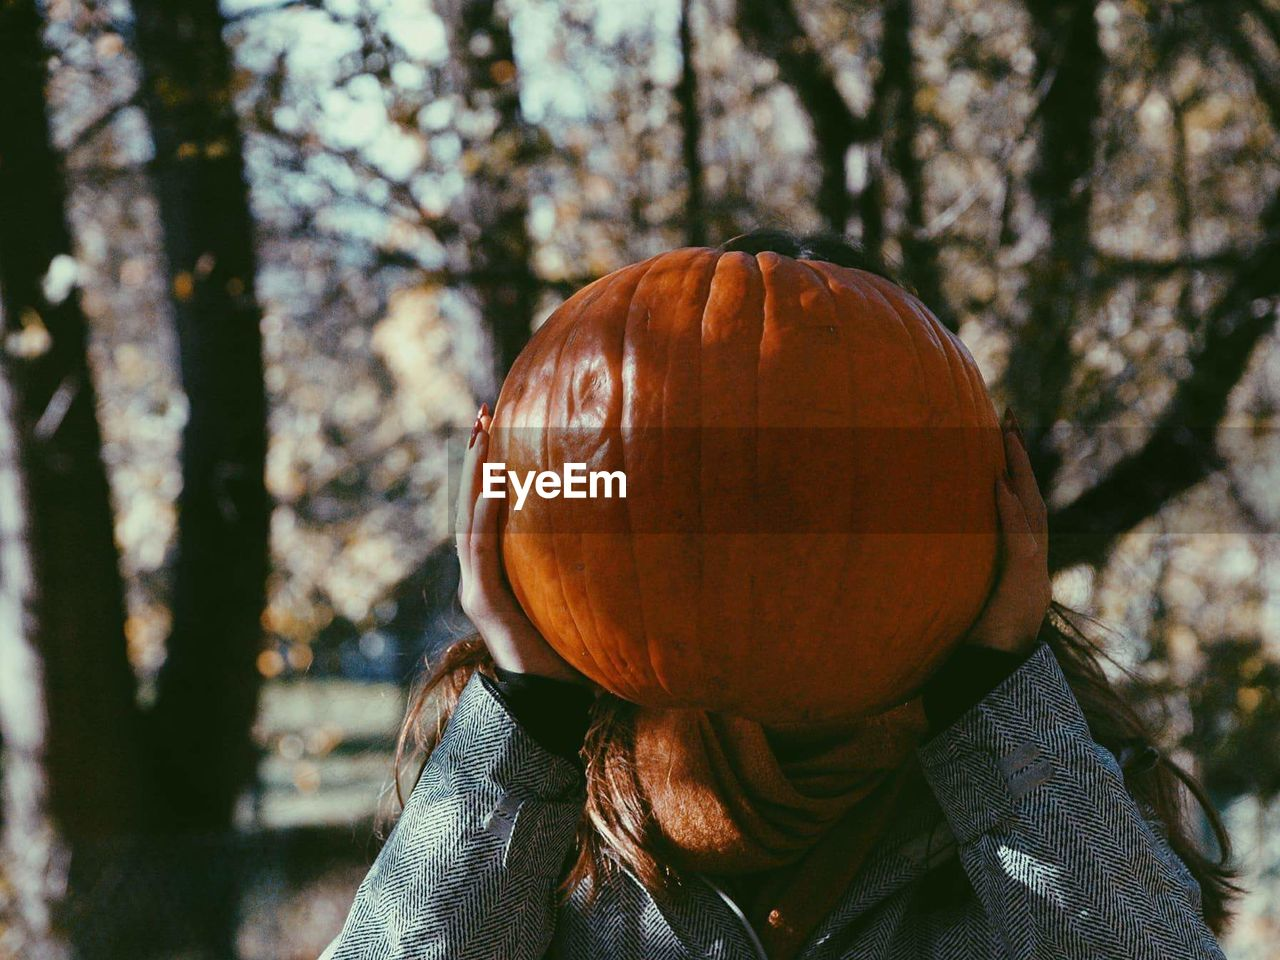 Teenage Girl Covering Face With Pumpkin